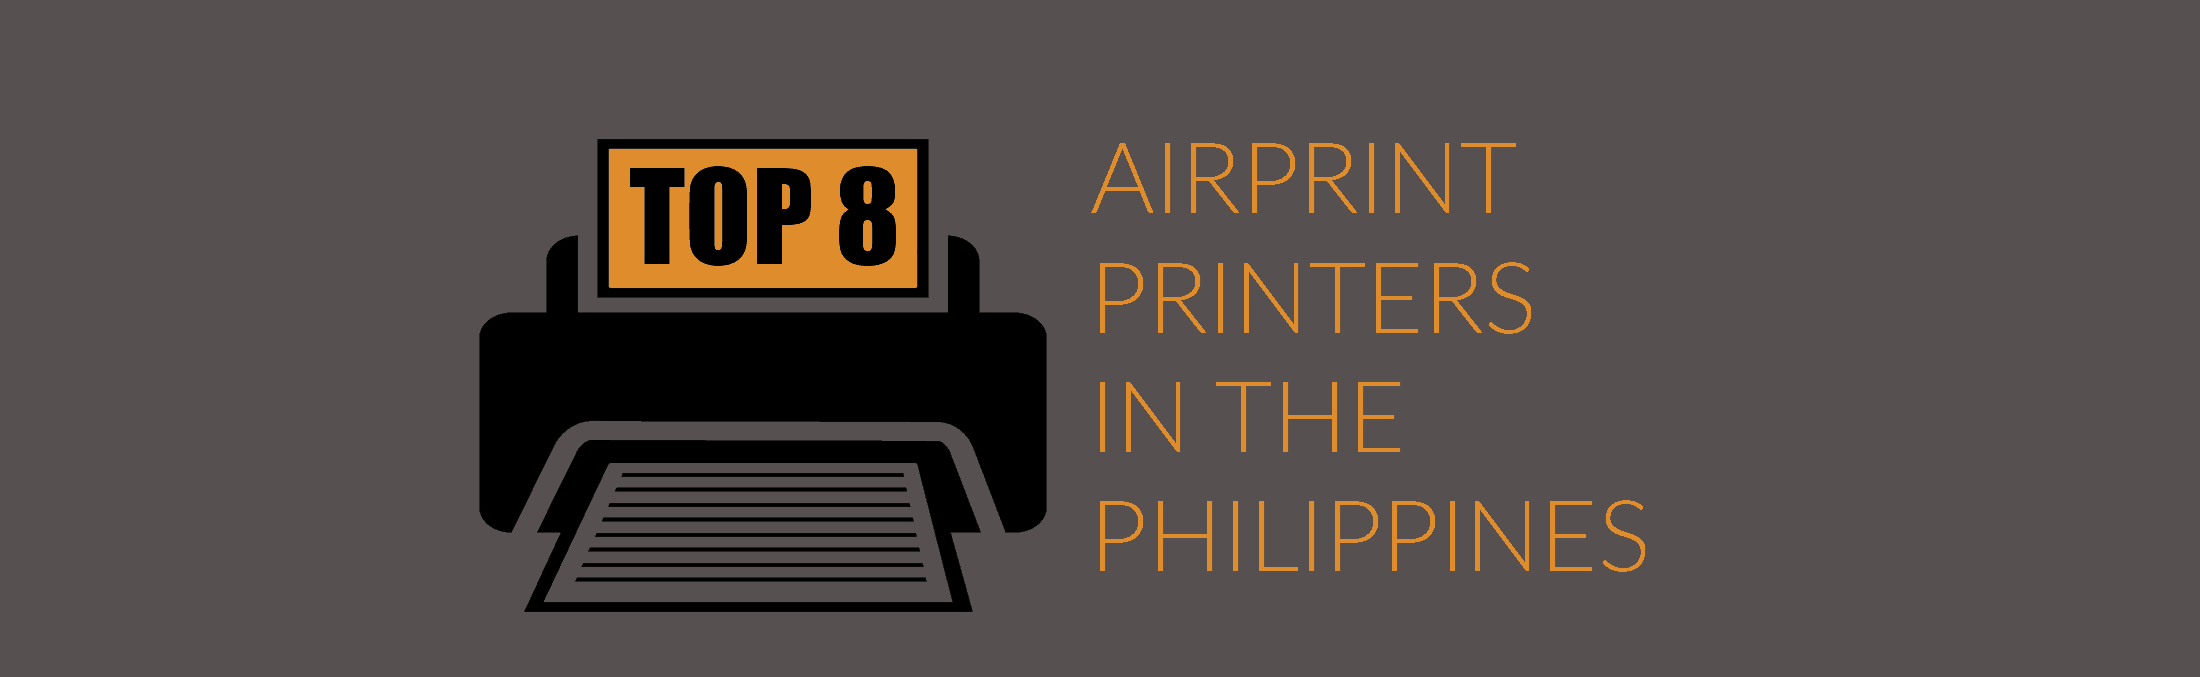 best airprint printers in the philippines